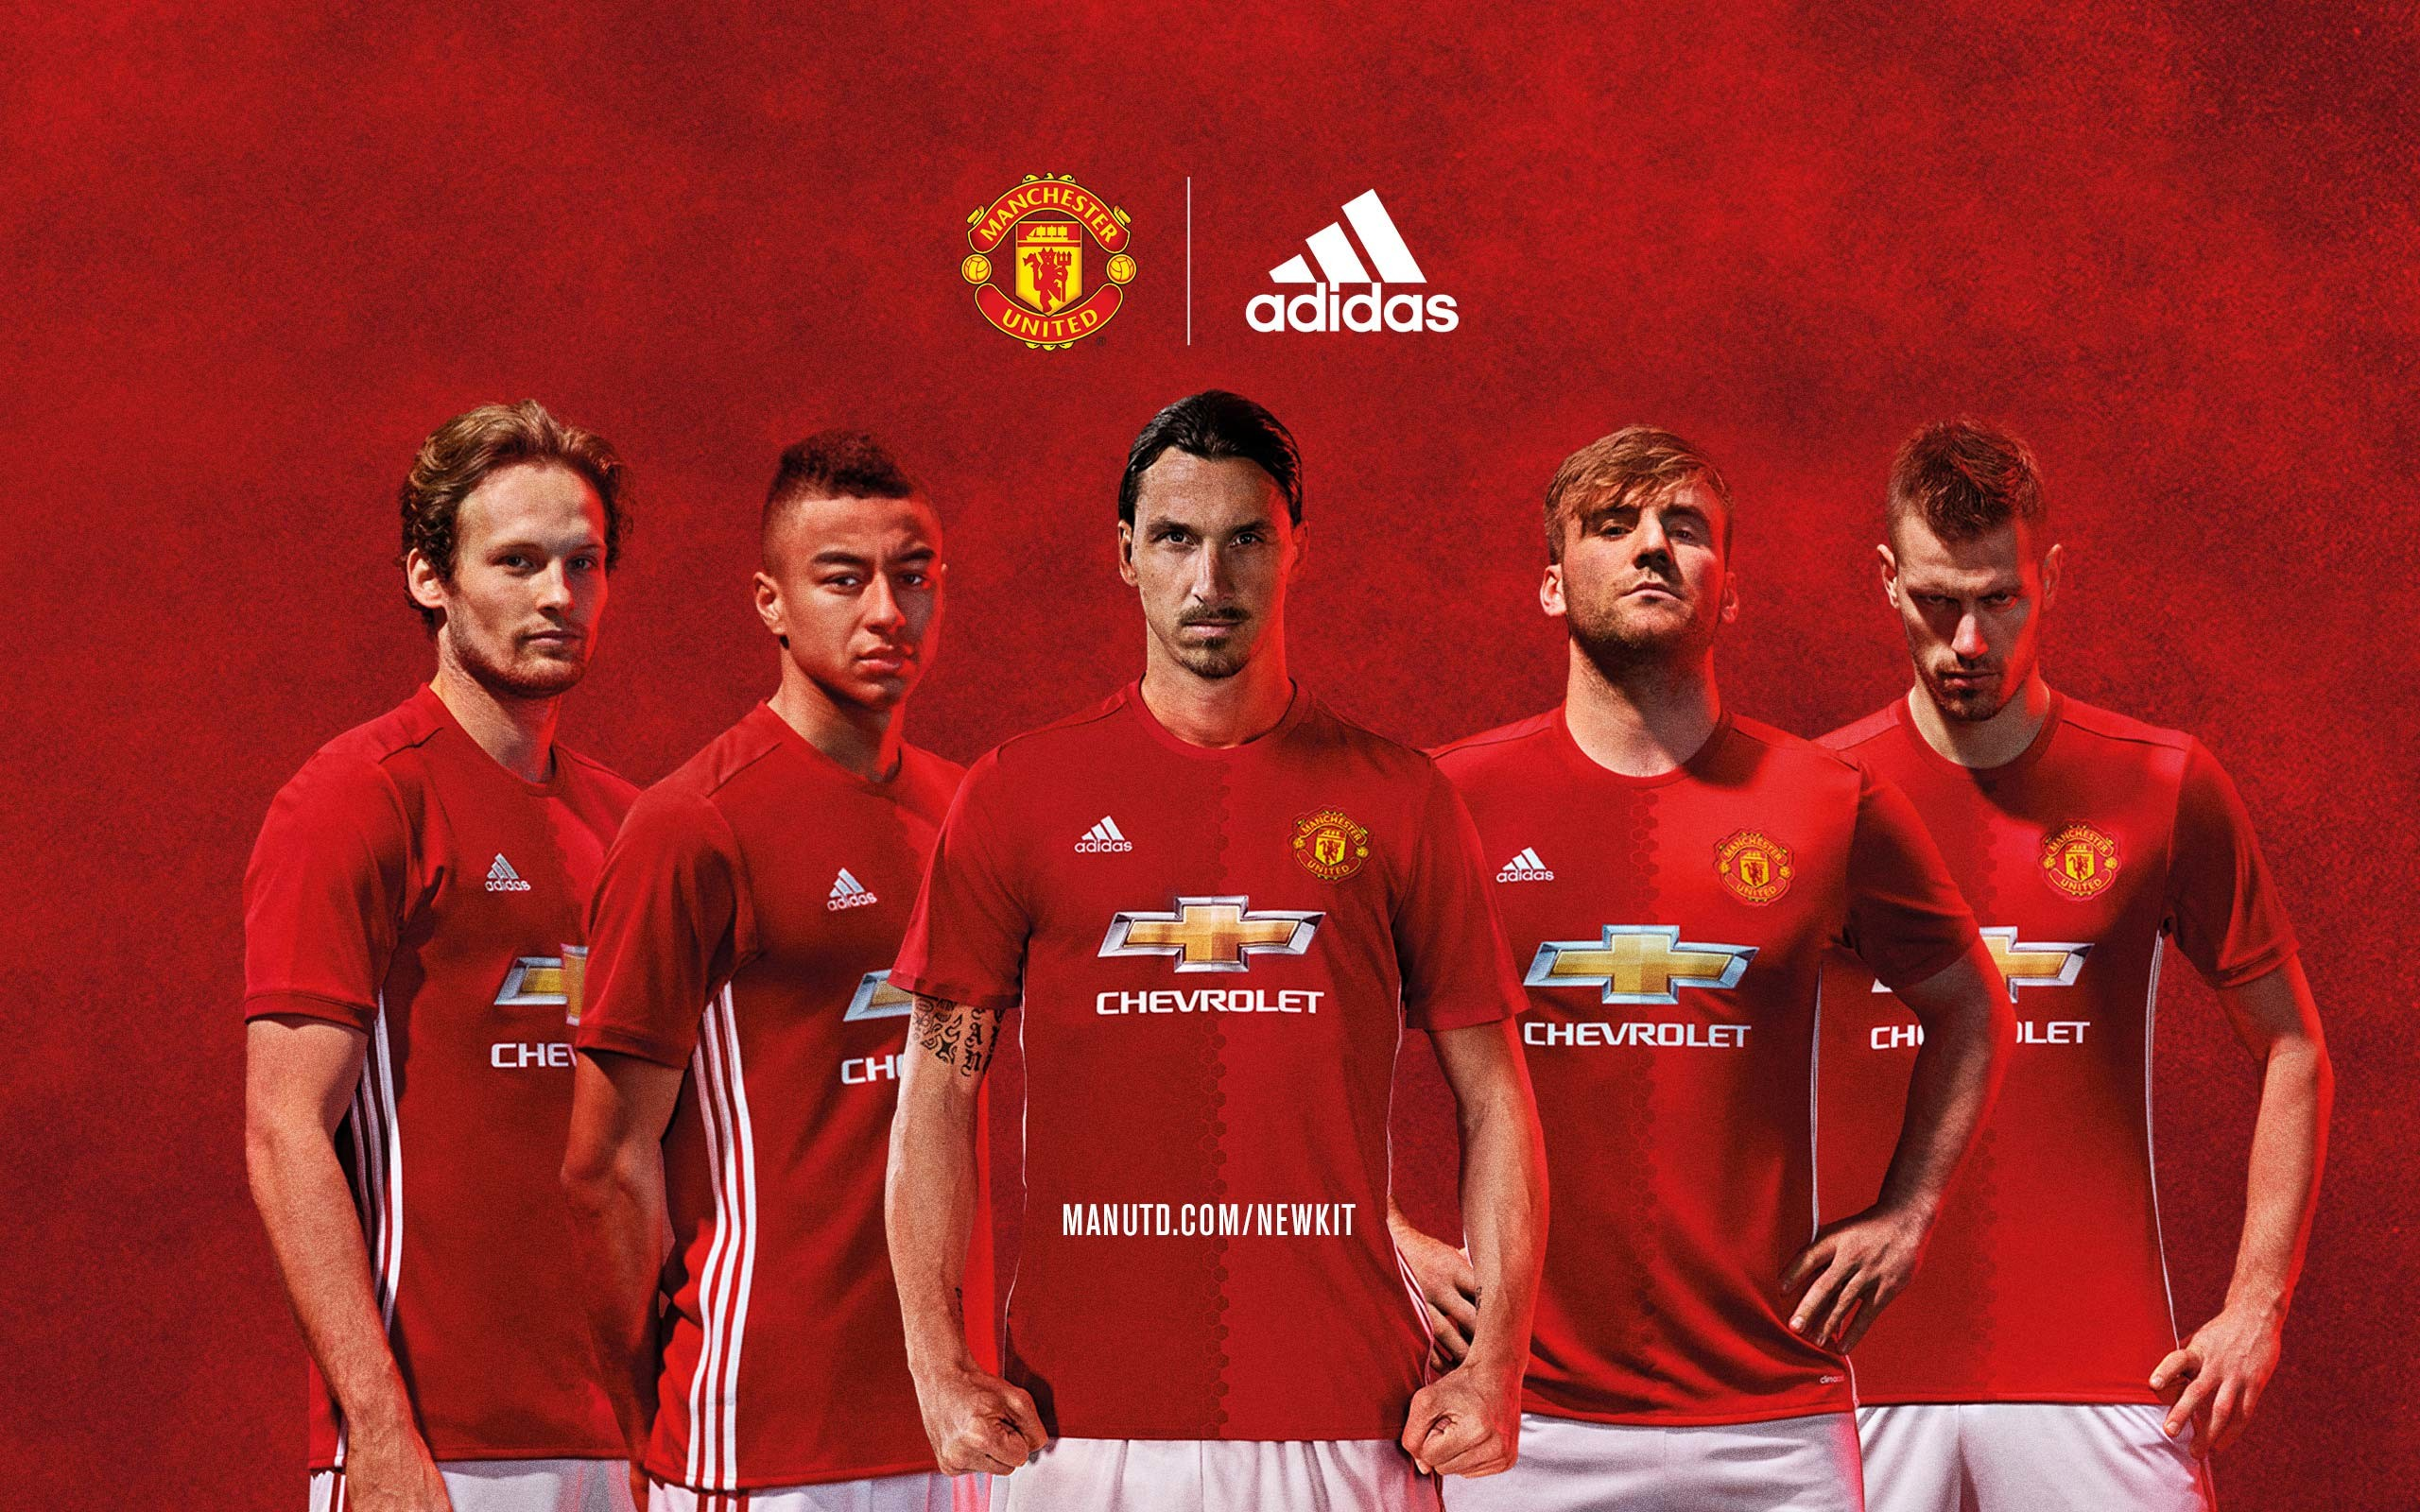 22 ] Man United Wallpaper 2017 On WallpaperSafari